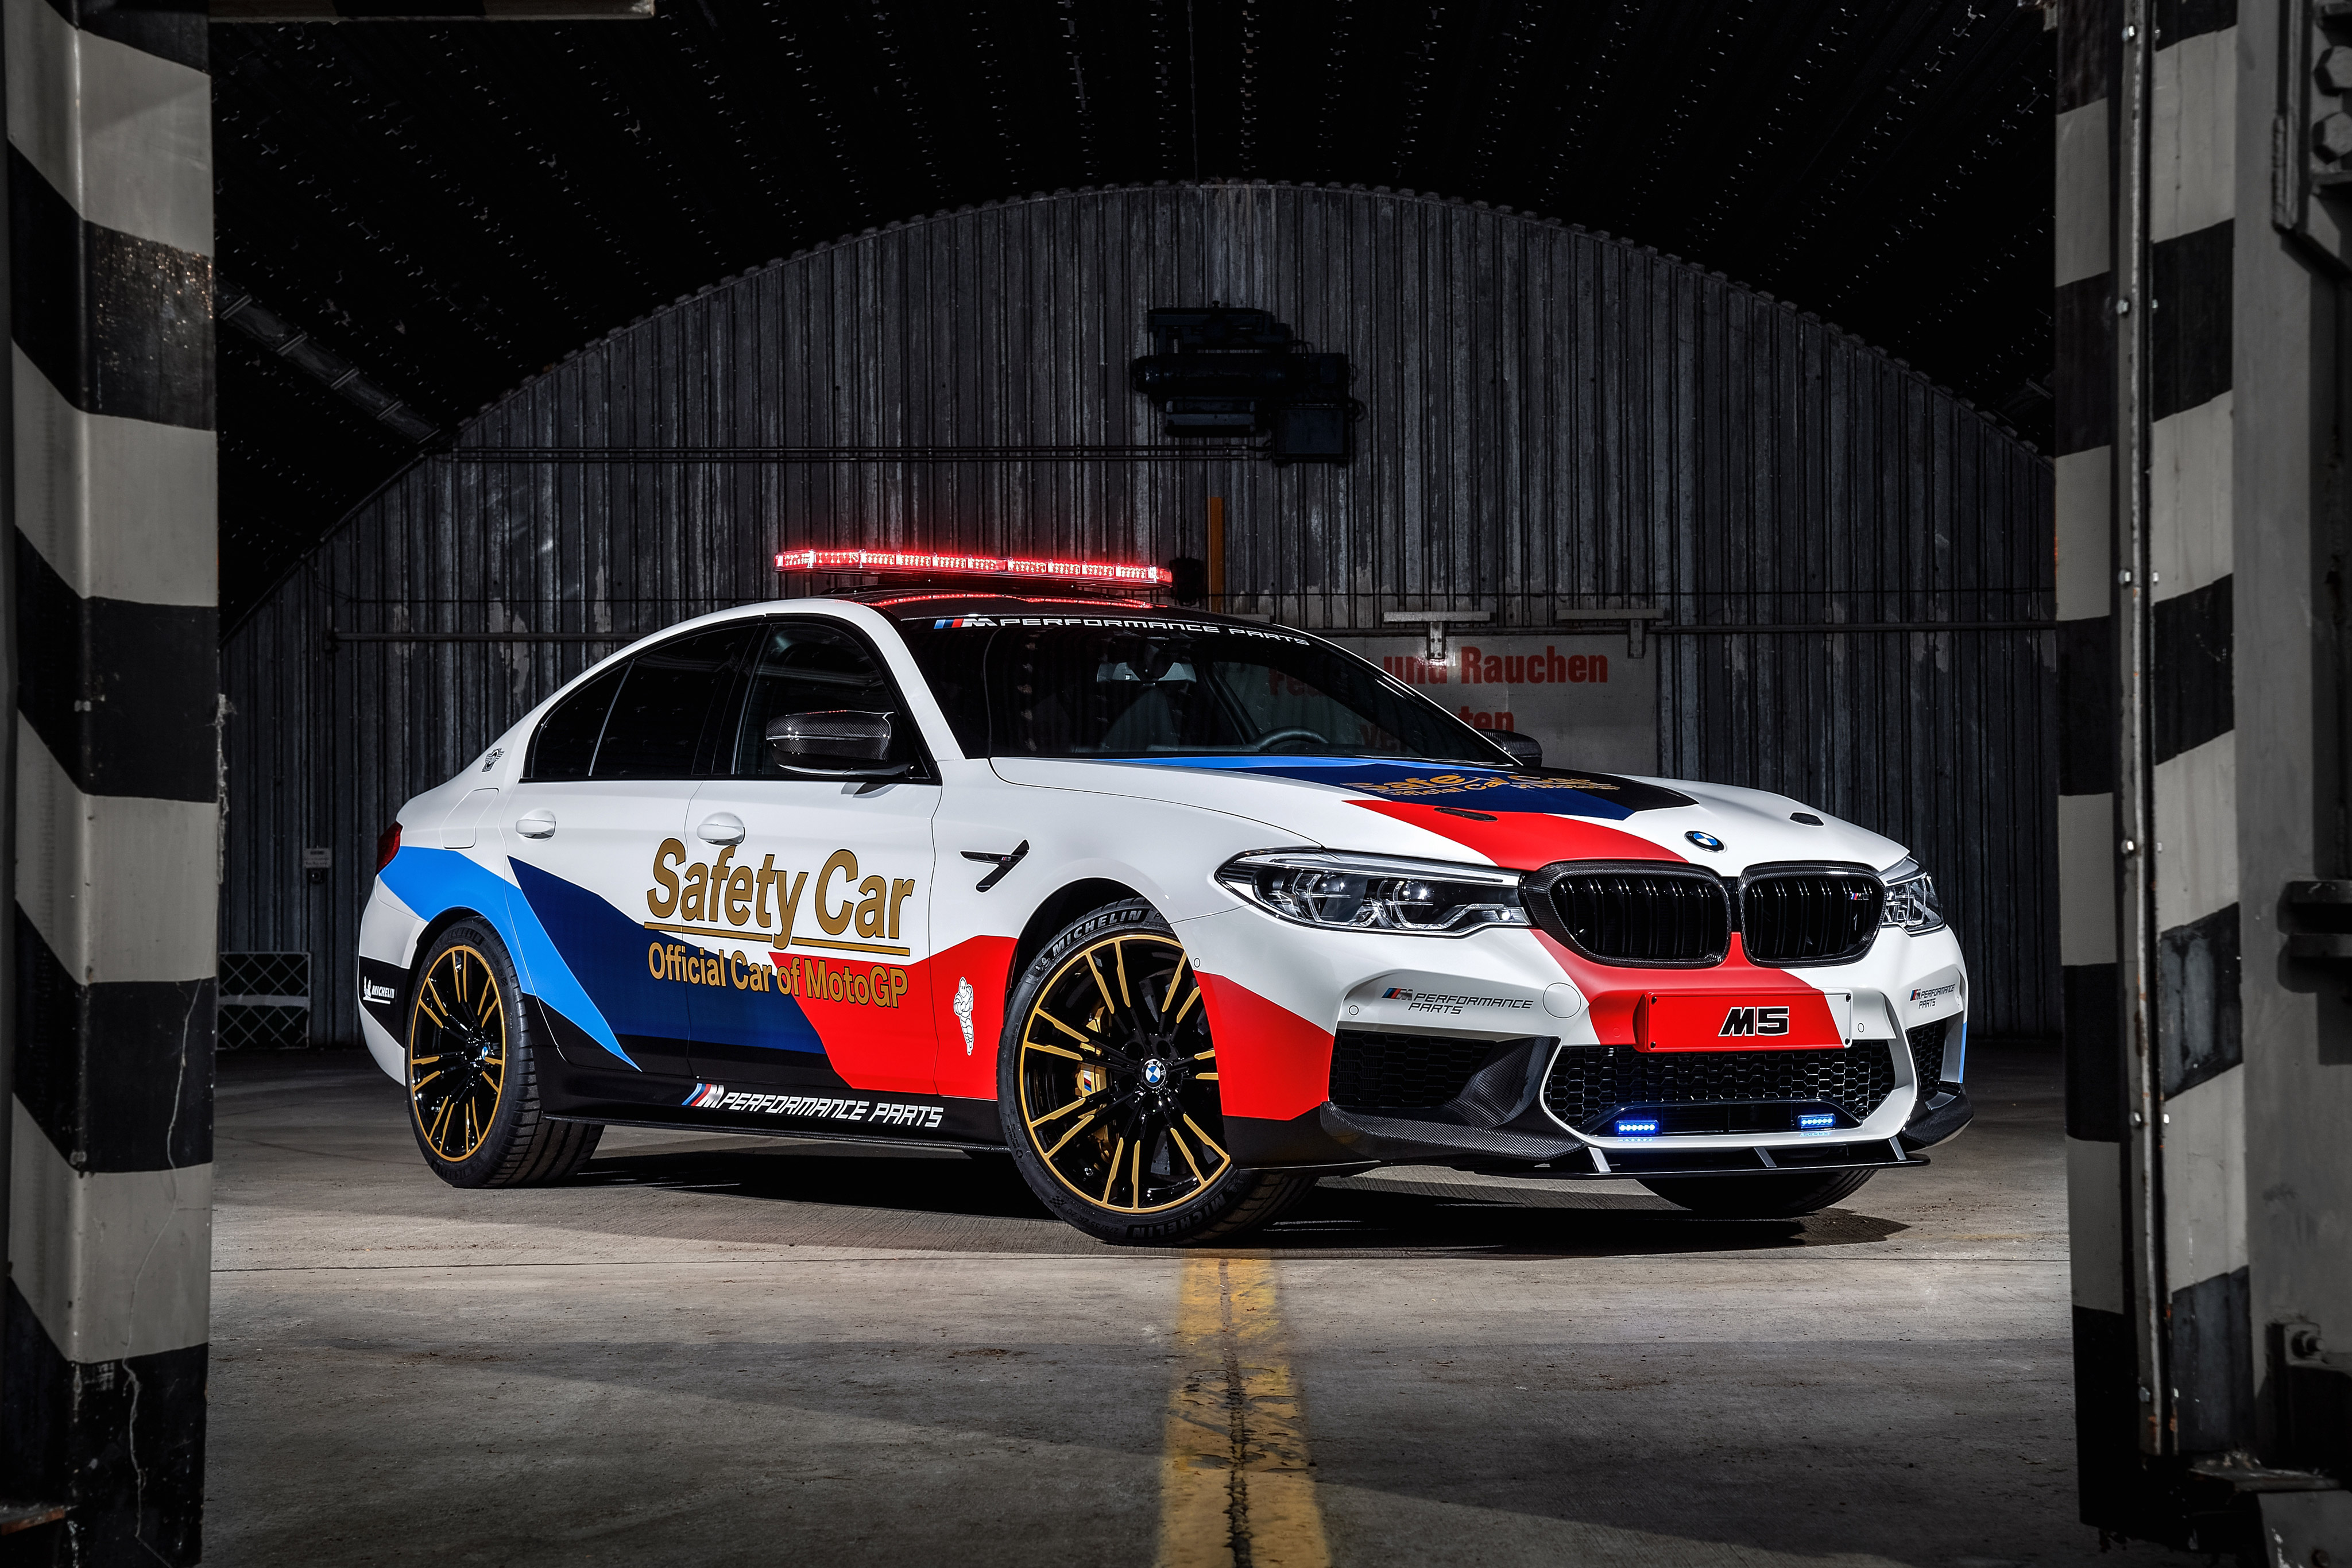 Bmw M5 Motogp Safety Car Hd Cars 4k Wallpapers Images Backgrounds Photos And Pictures